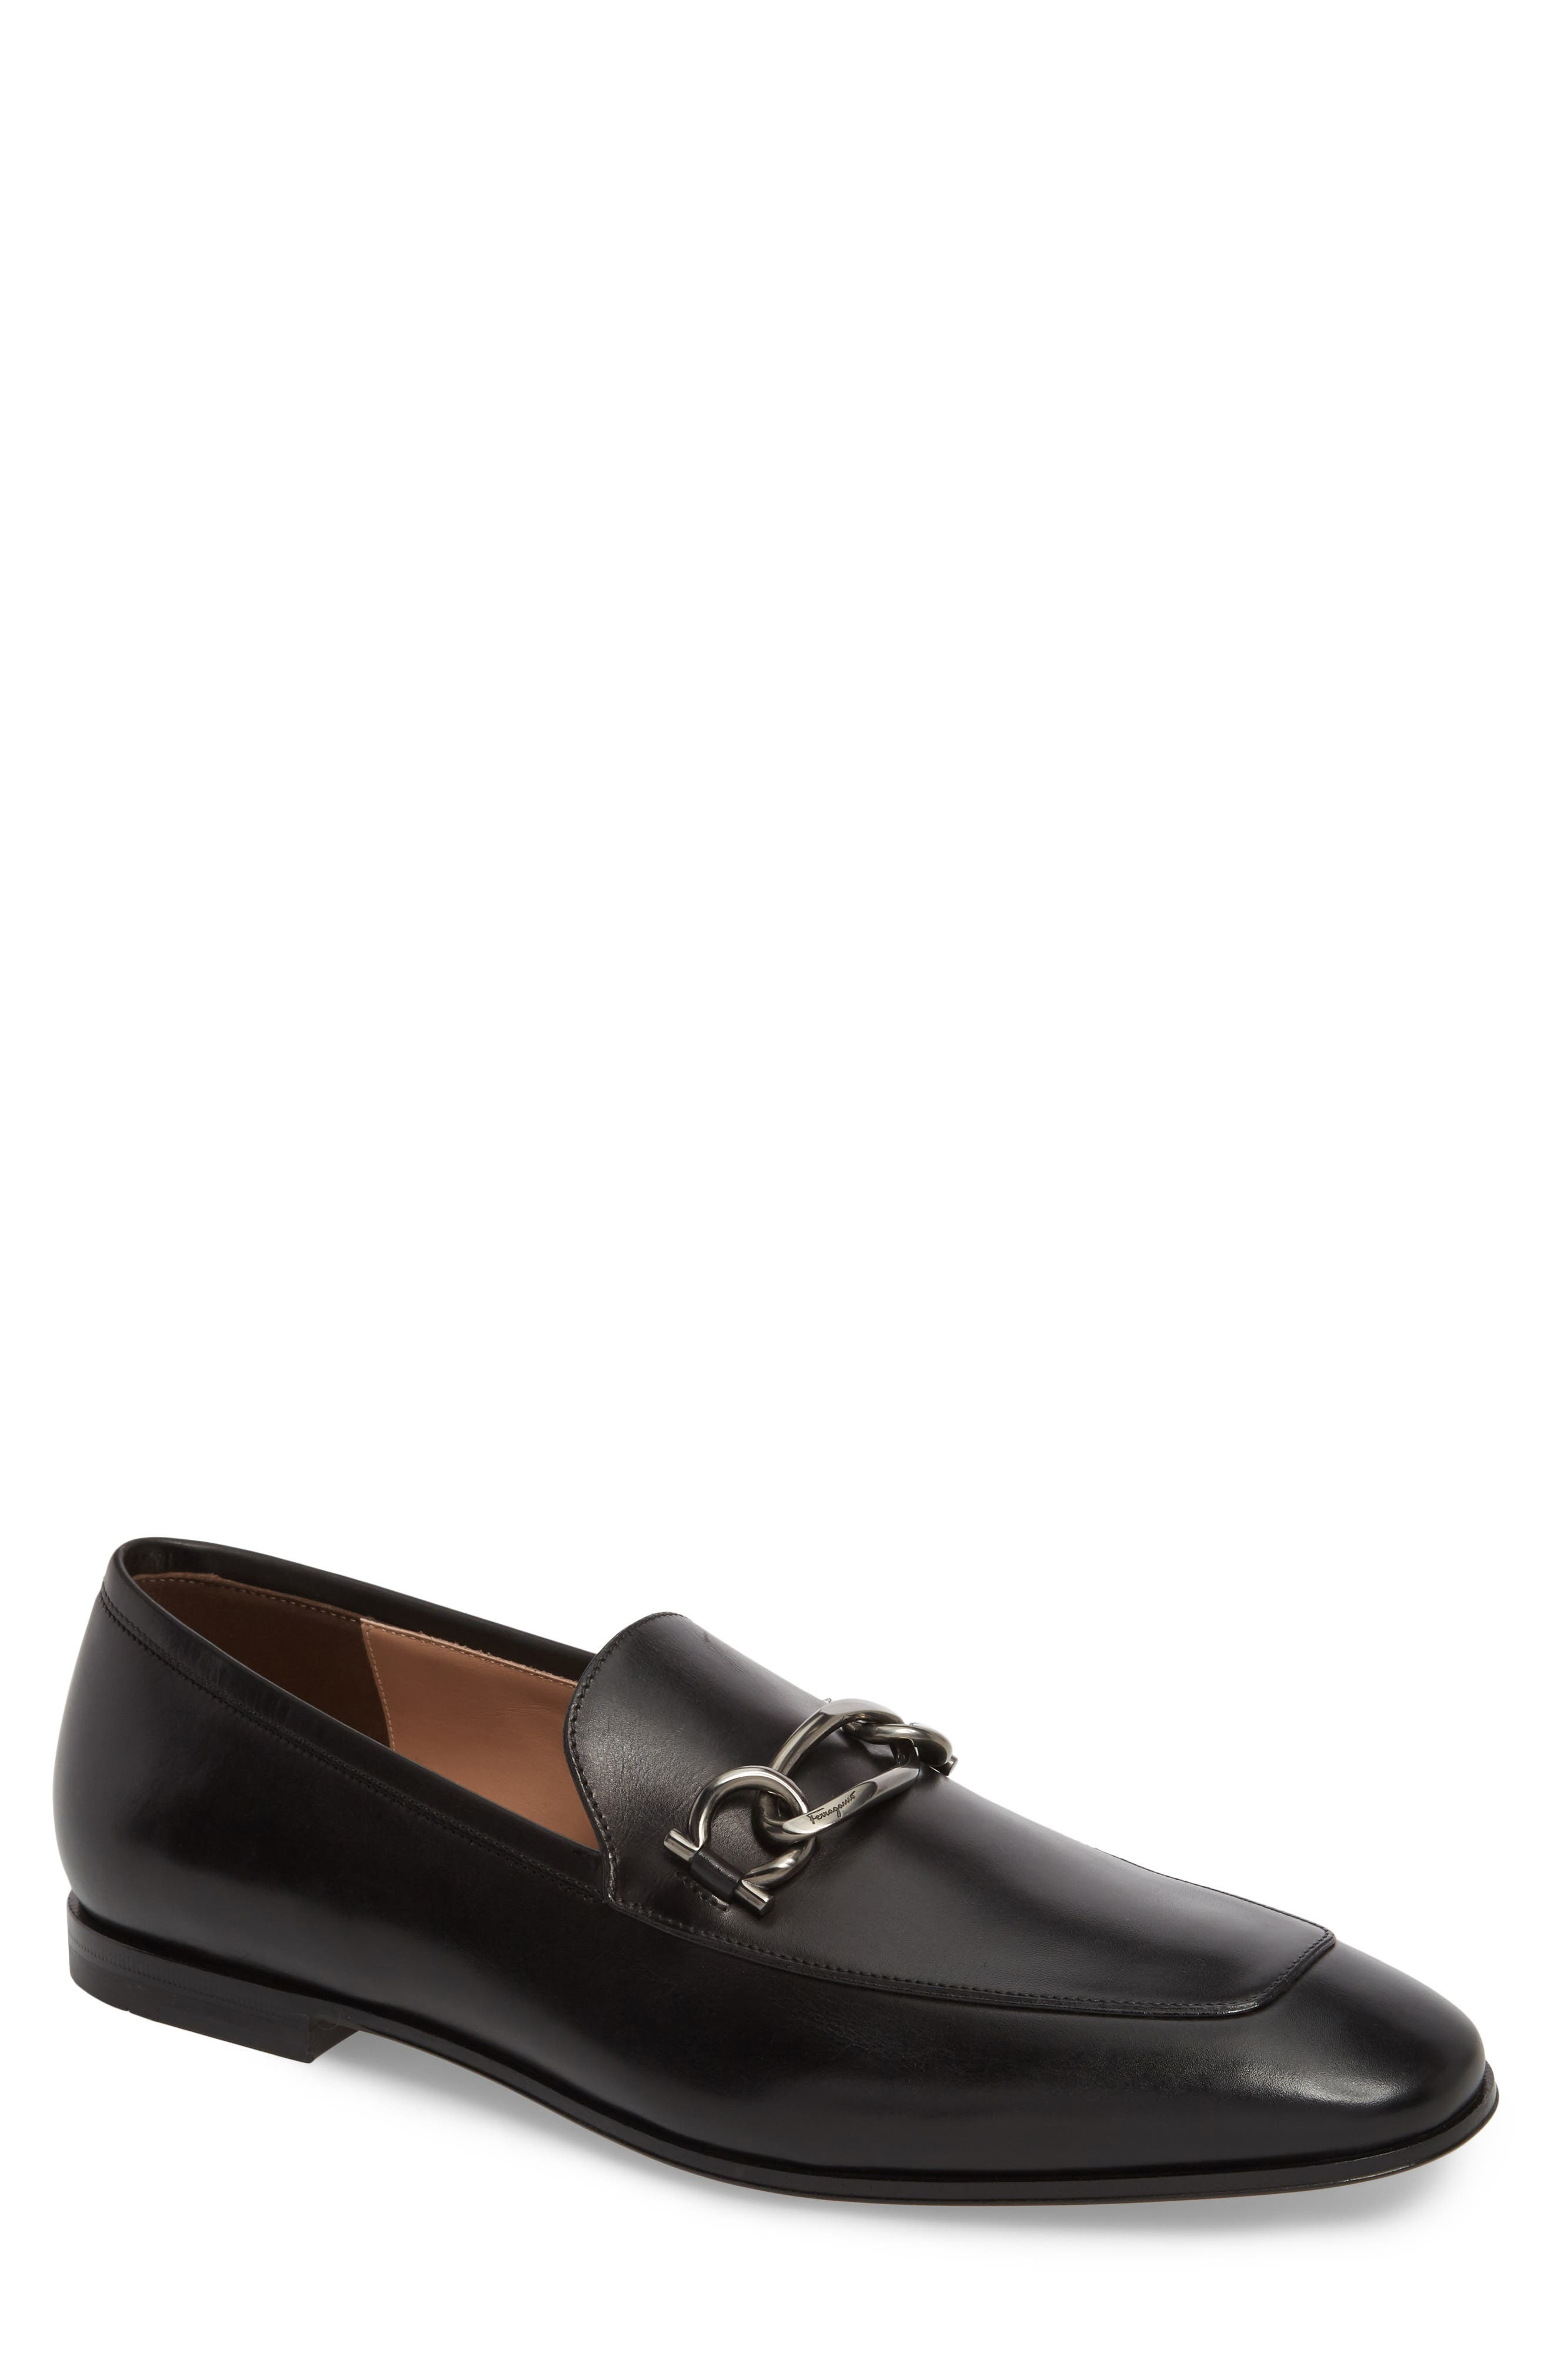 Boy Chain Bit Loafer,                         Main,                         color, NERO LEATHER